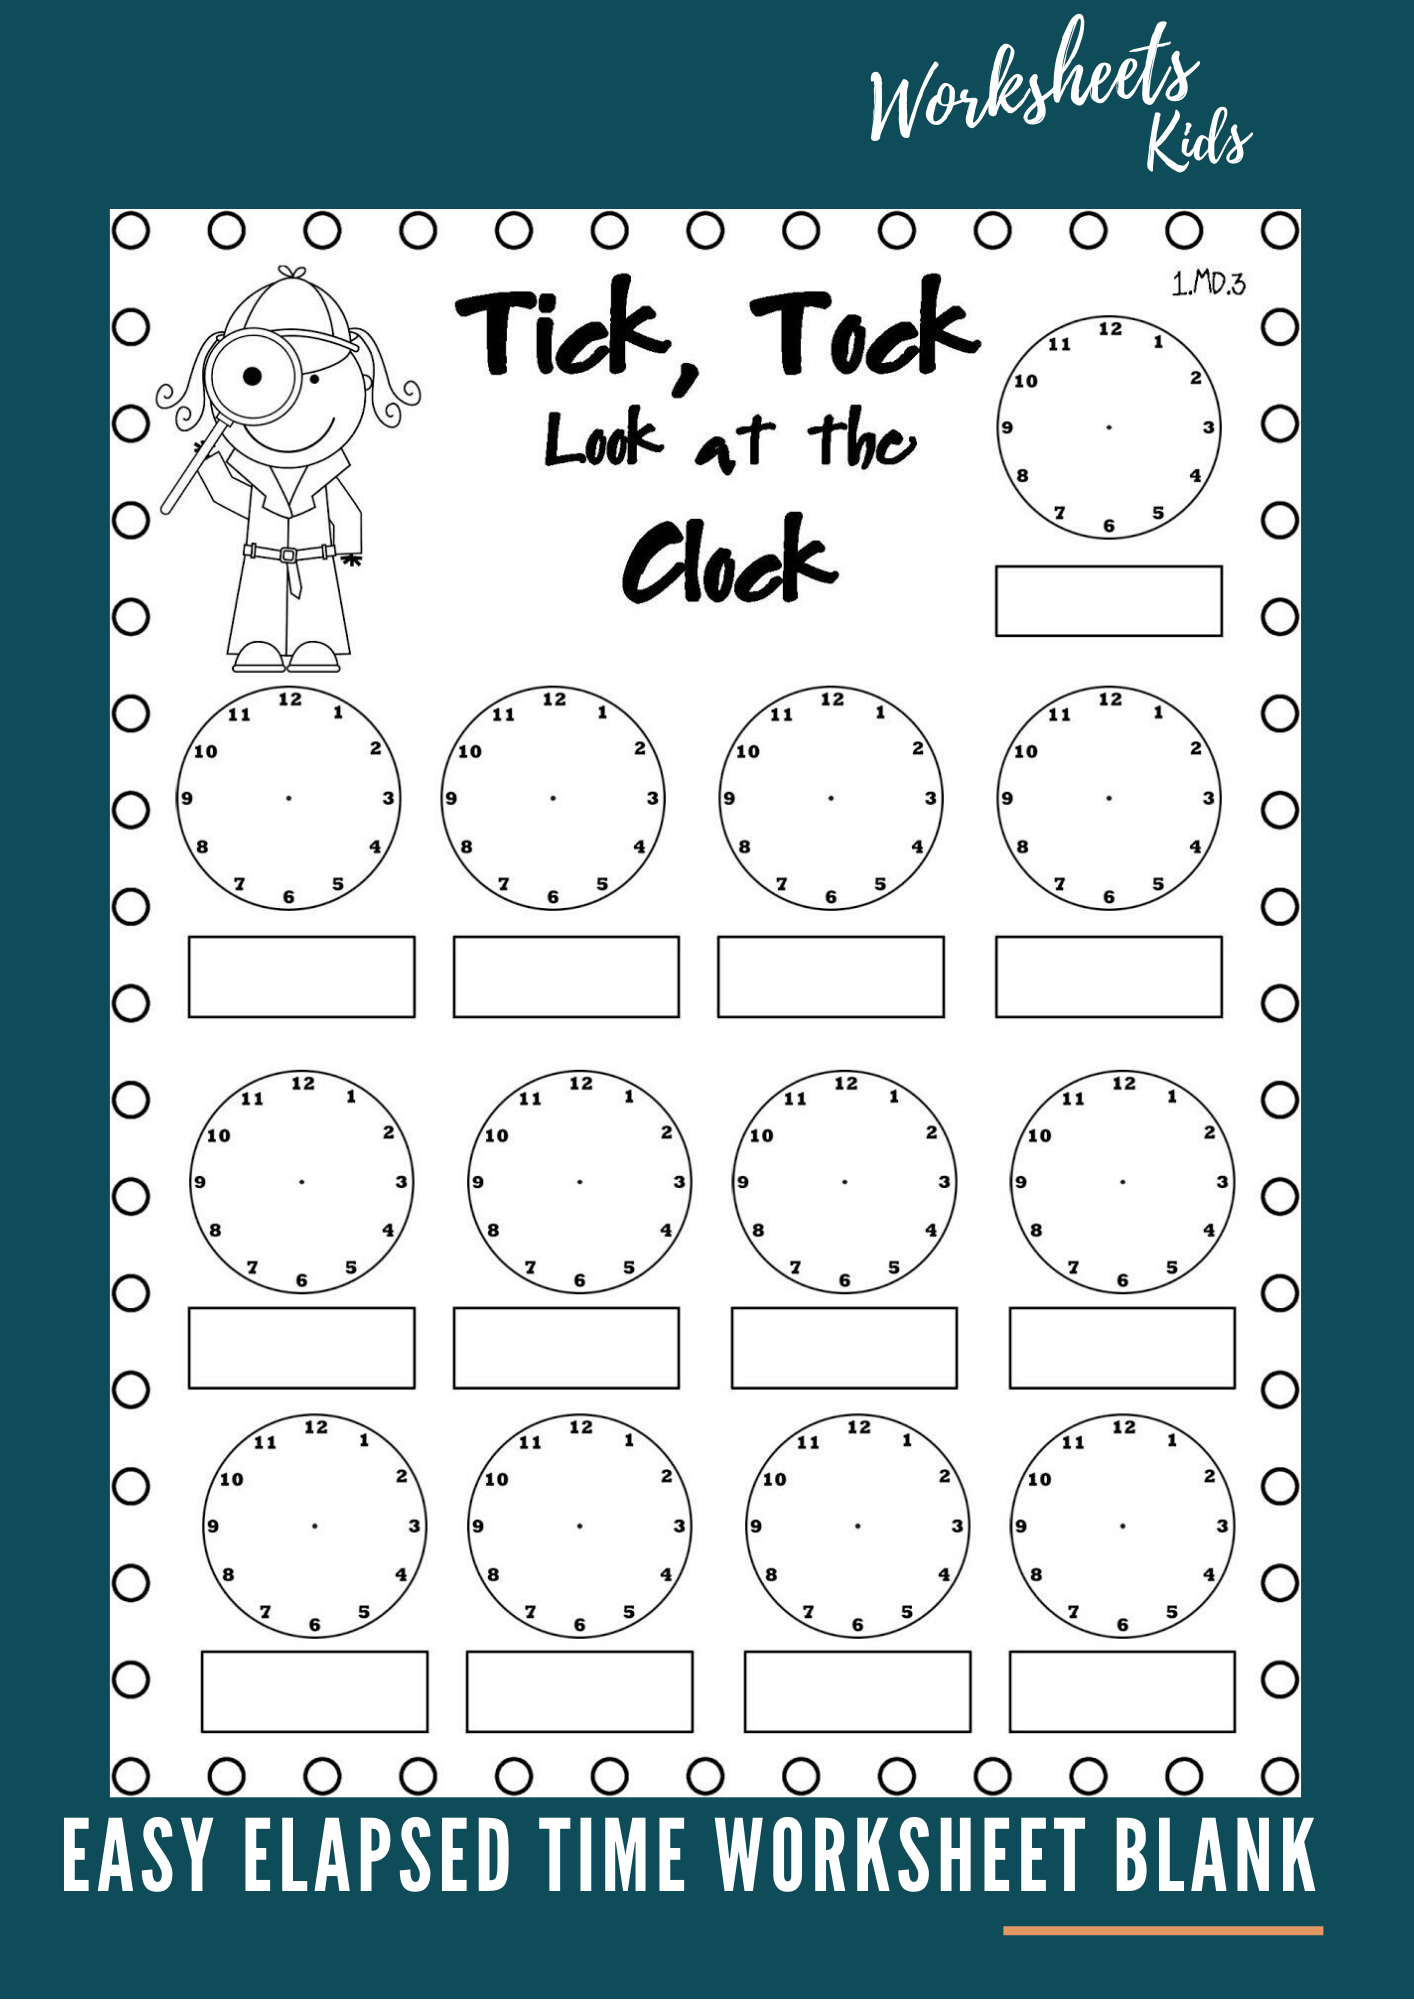 Easy Elapsed Time Worksheet Blank - There are a lot of different easy Elapsed Time worksheets available on the Internet. Some of them are good and some of them are not so good.